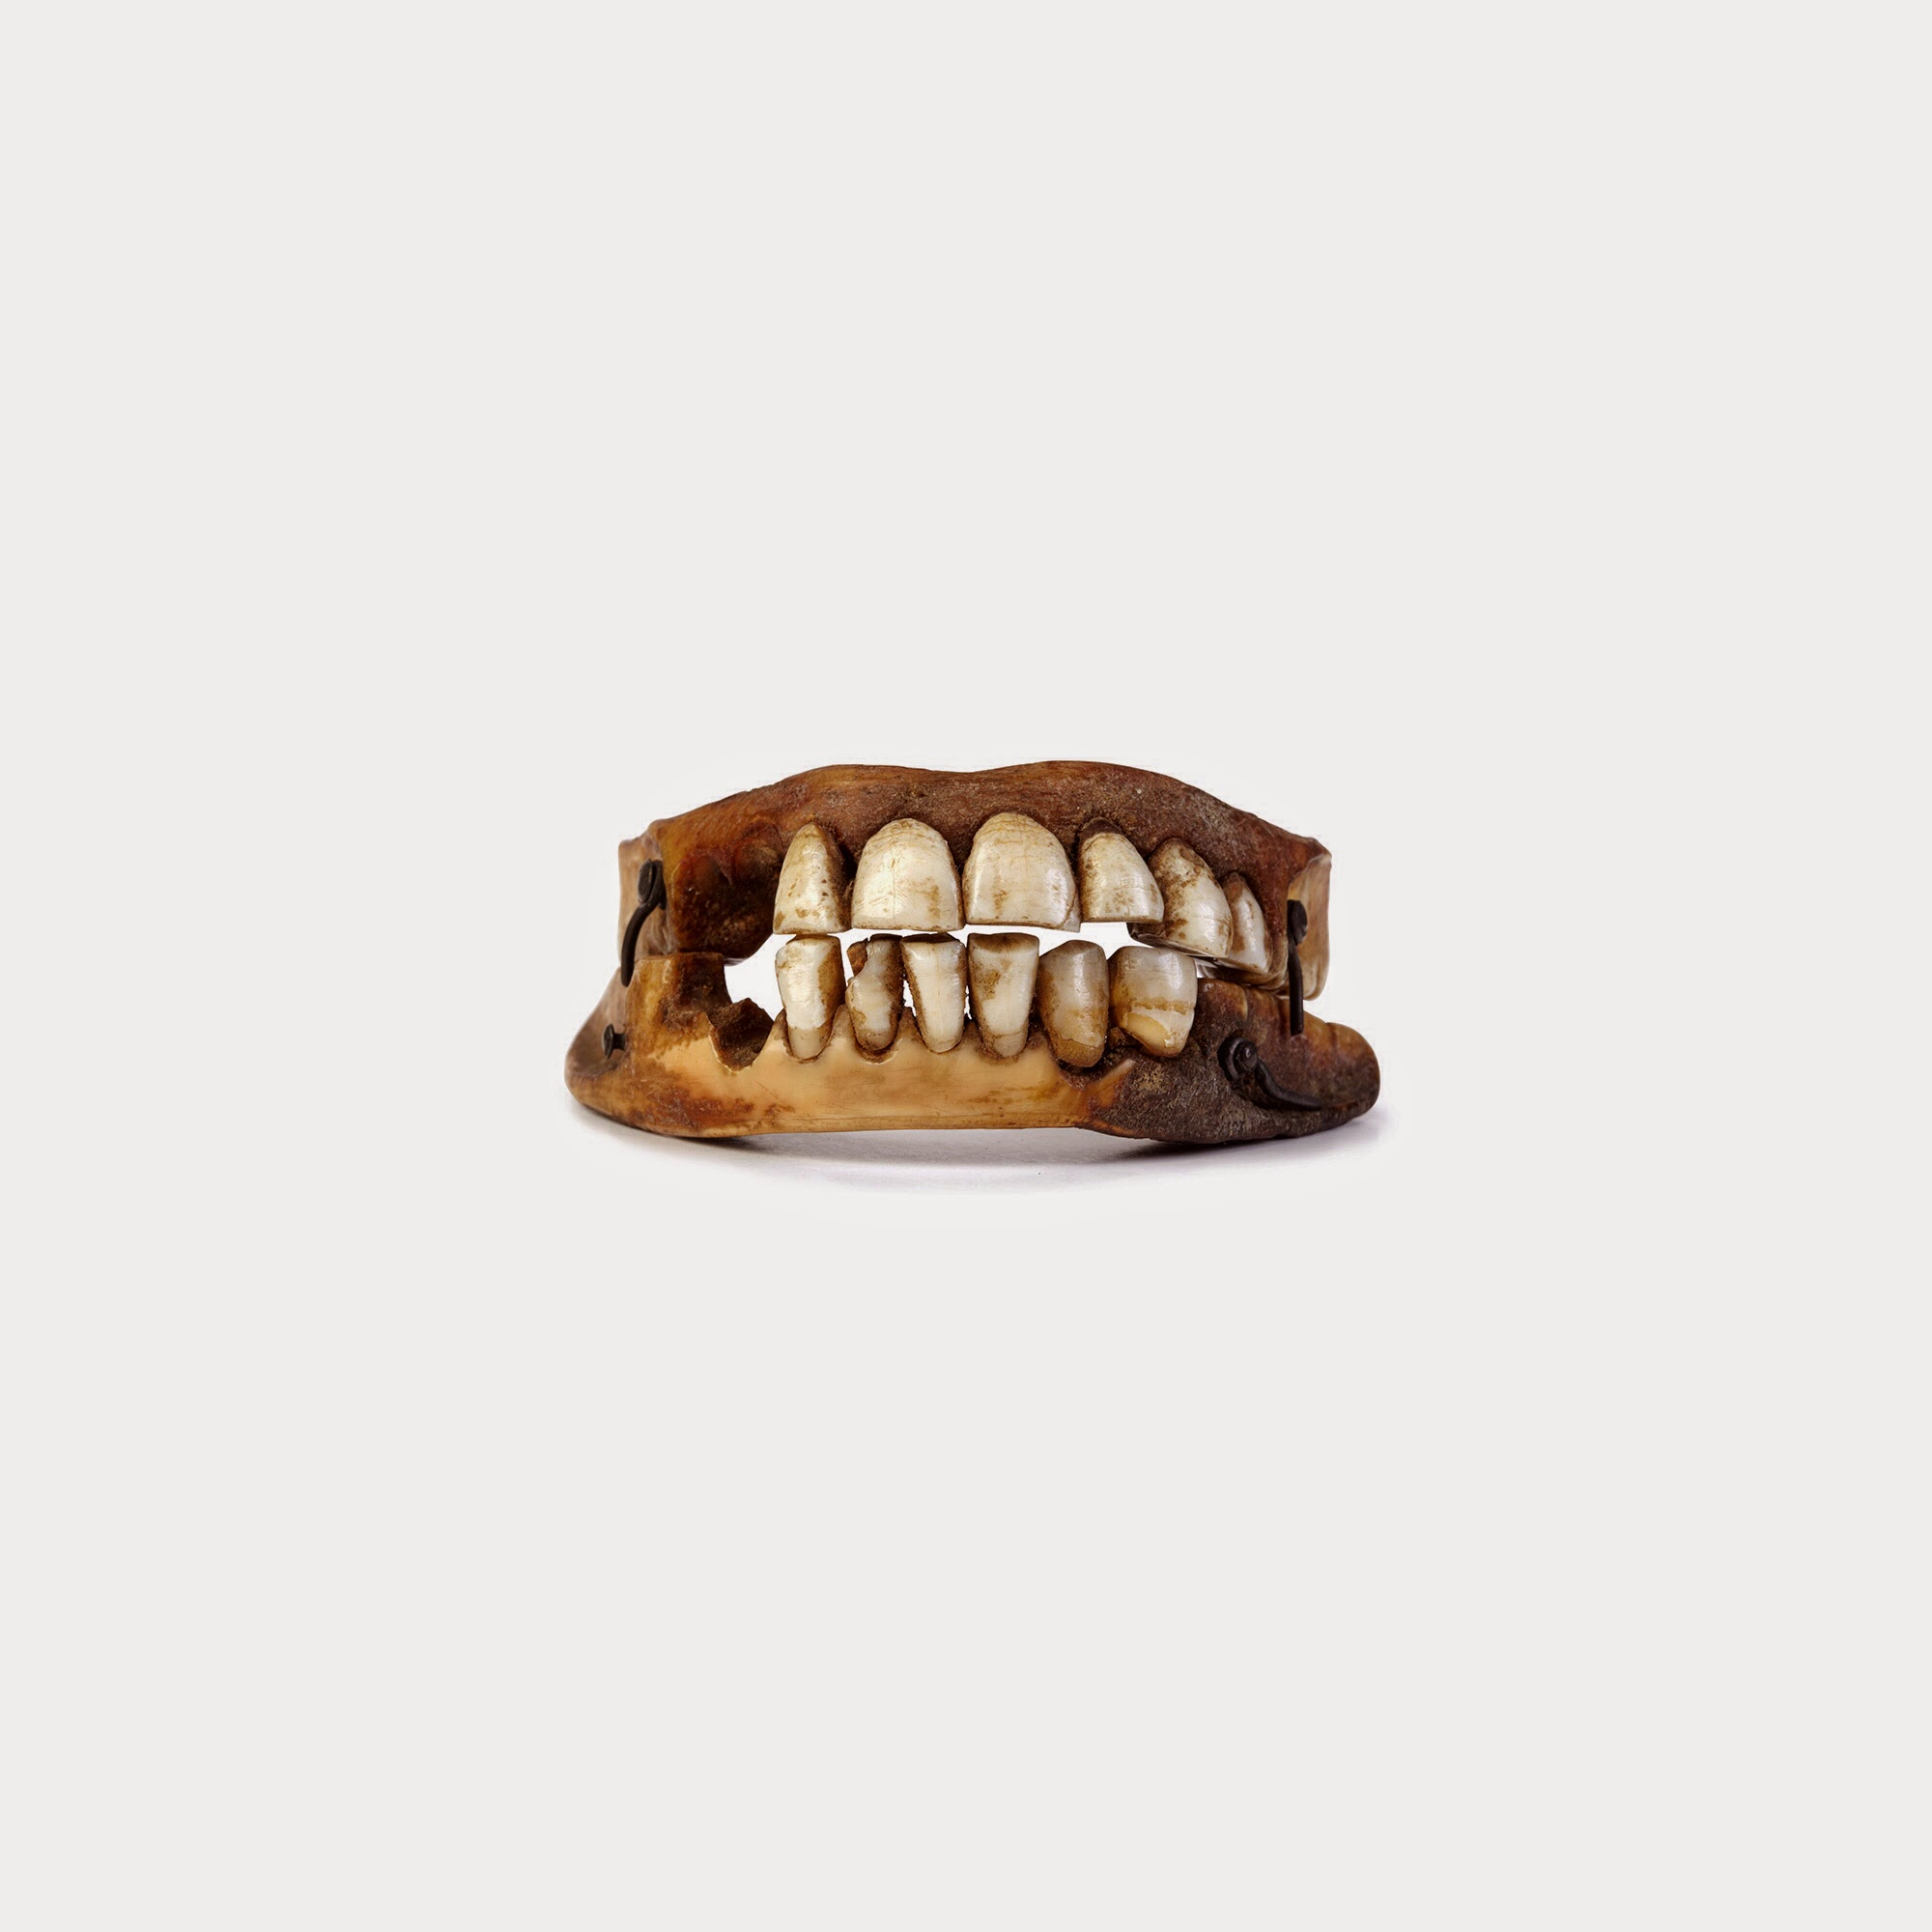 Quigley\'s Cabinet: Dentures from the dead